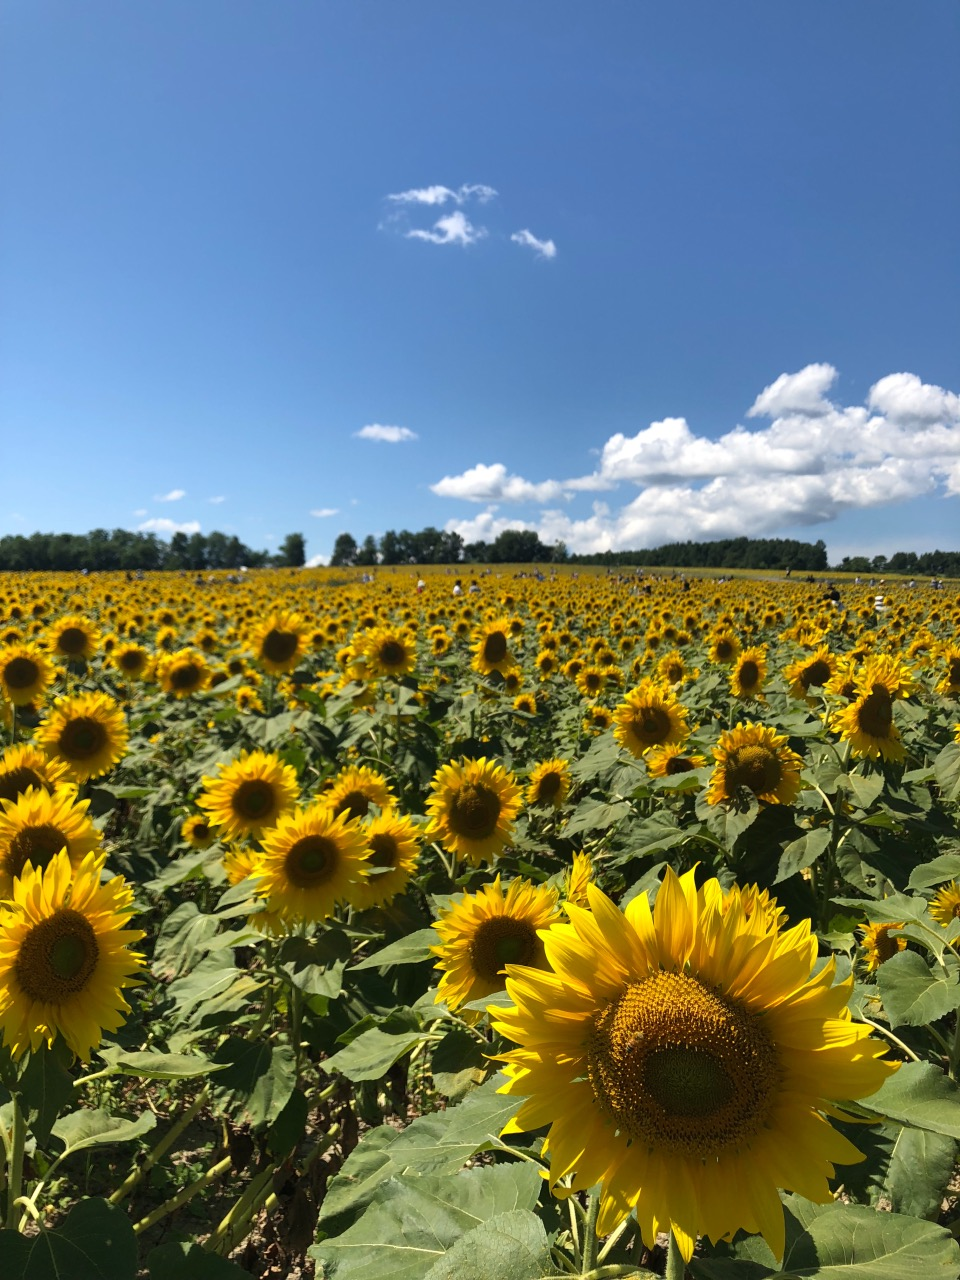 Huge field with unending sunflowers! Sunflower seed soft serve icecream is very yummy!